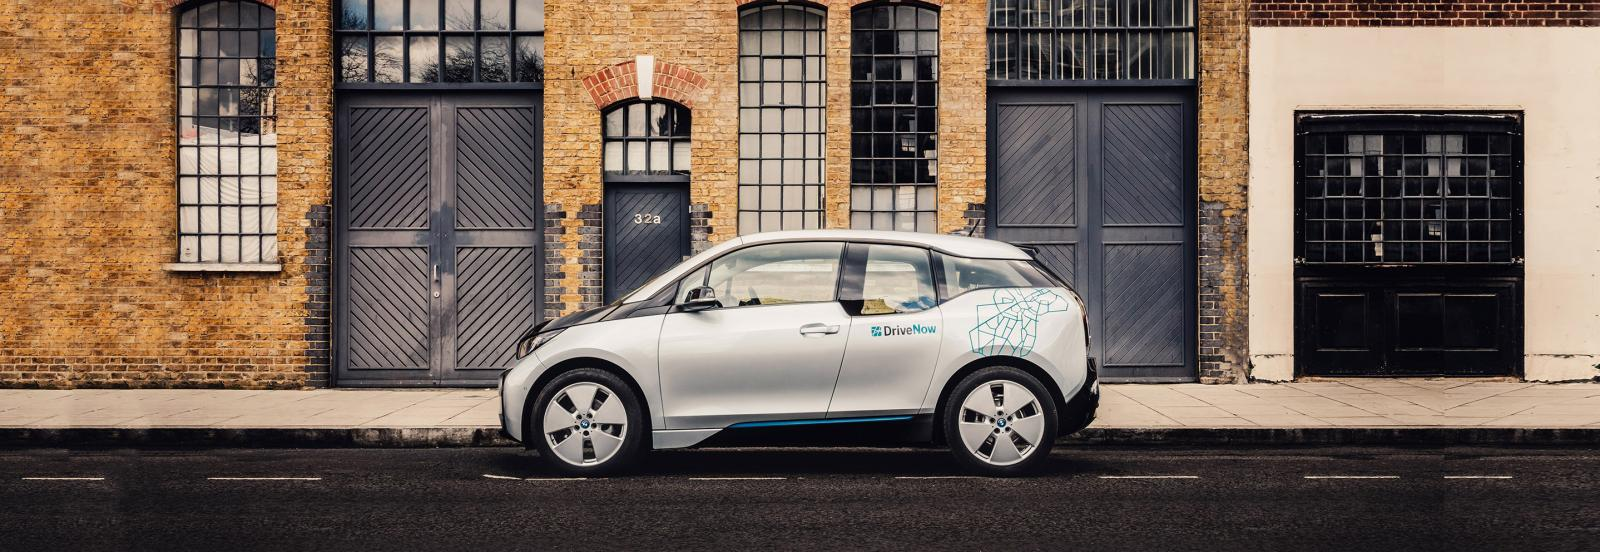 carsharing_how-it-works-london